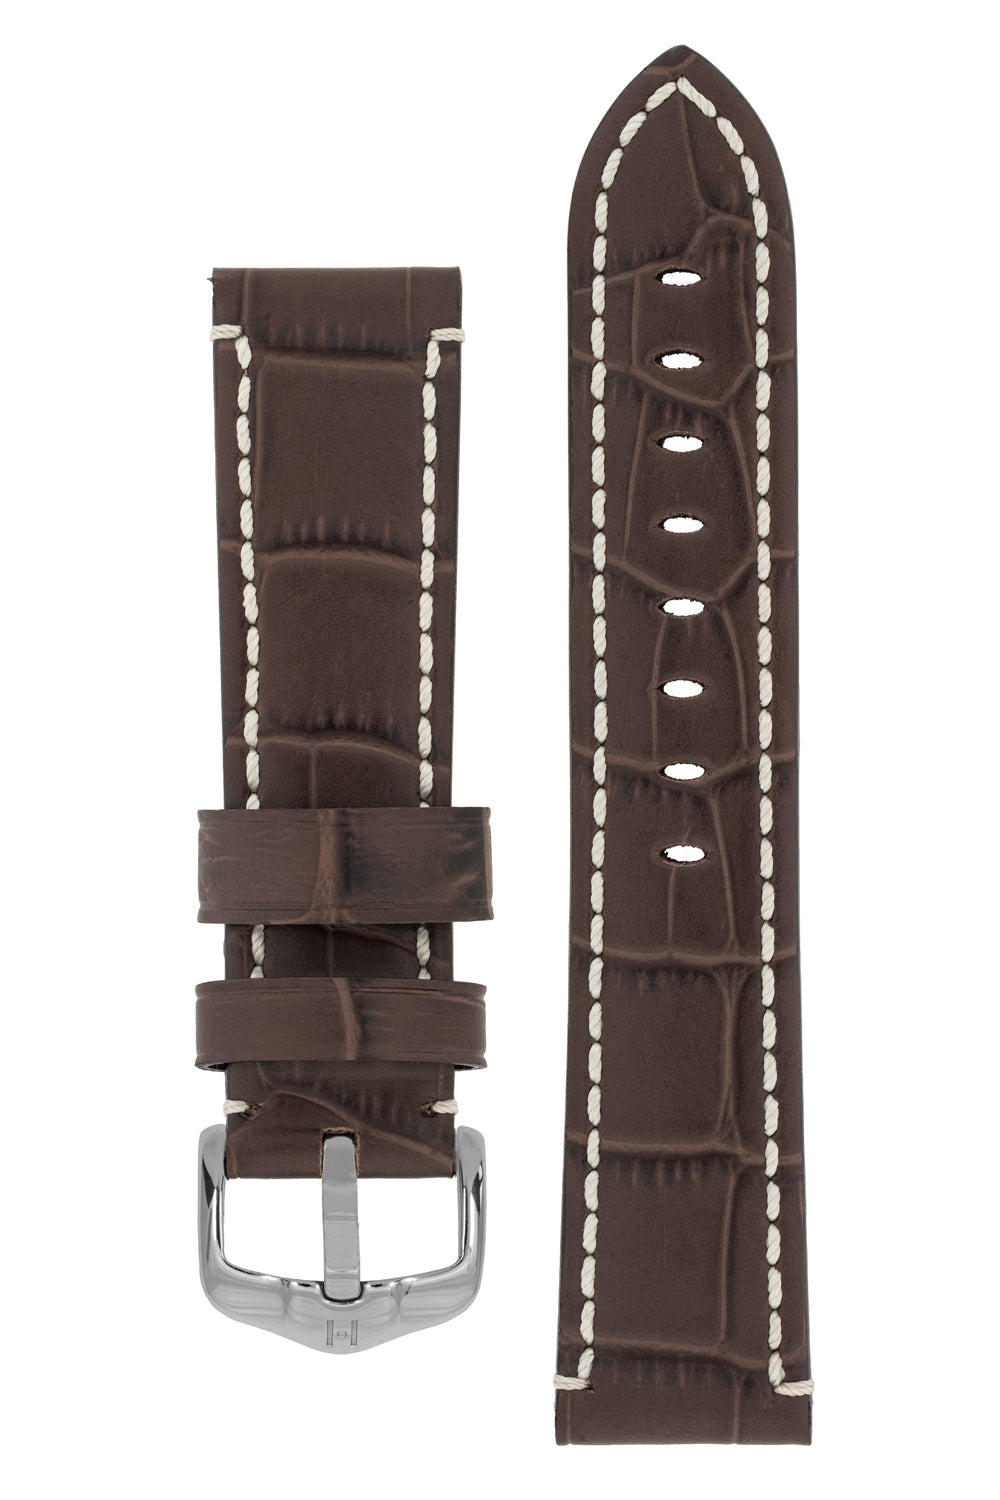 Hirsch KNIGHT Alligator Embossed Leather Watch Strap in BROWN